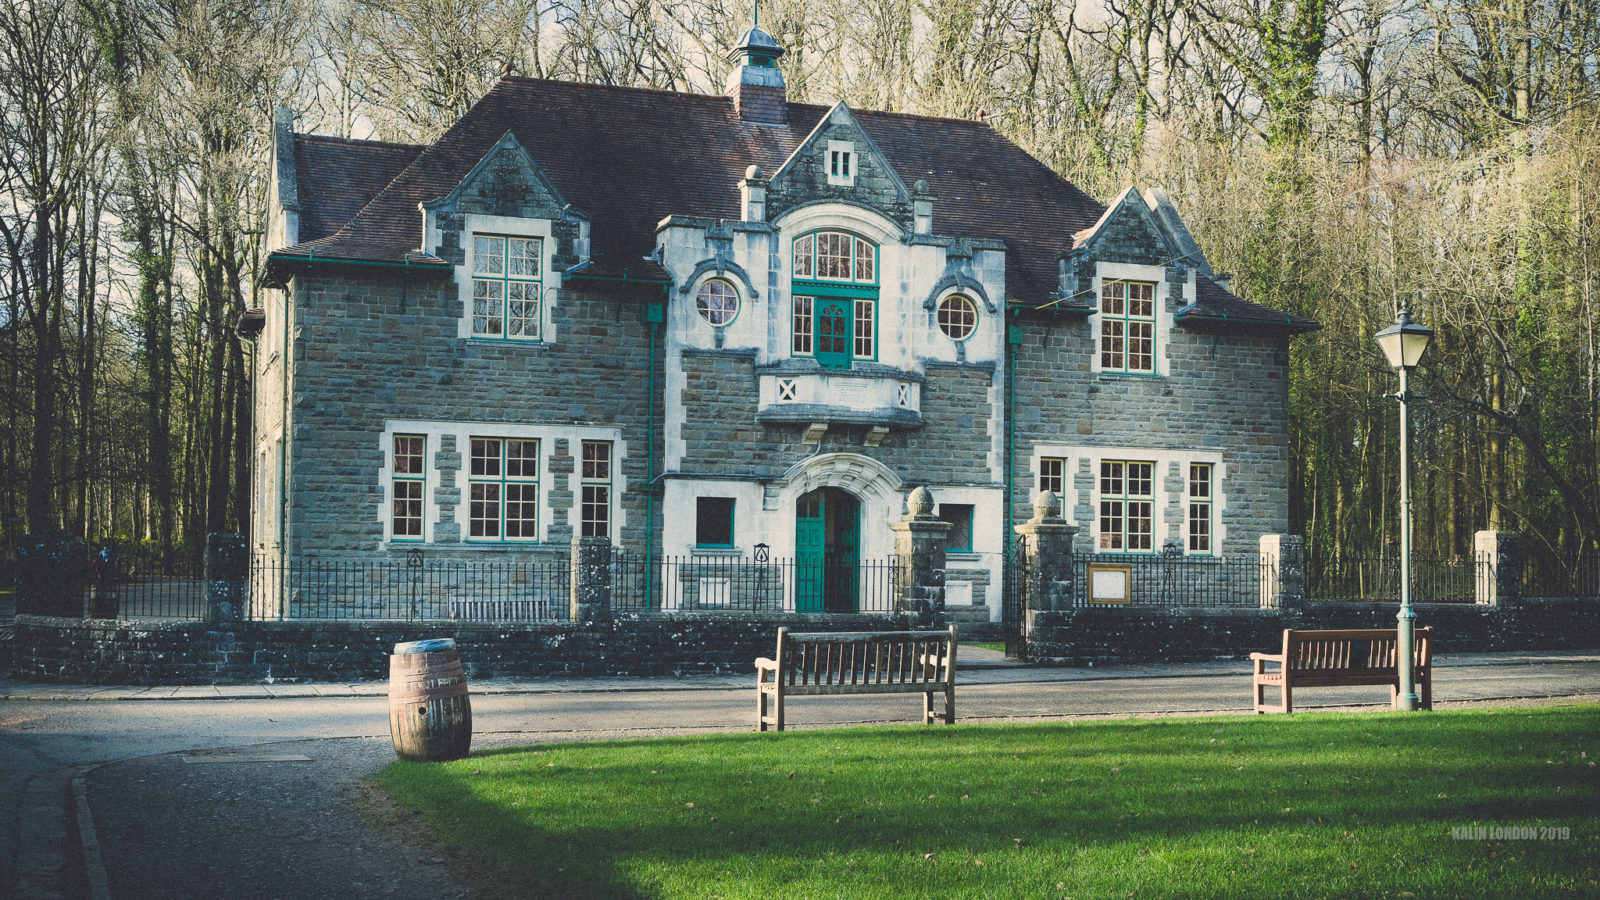 St. Fagans National Museum of History